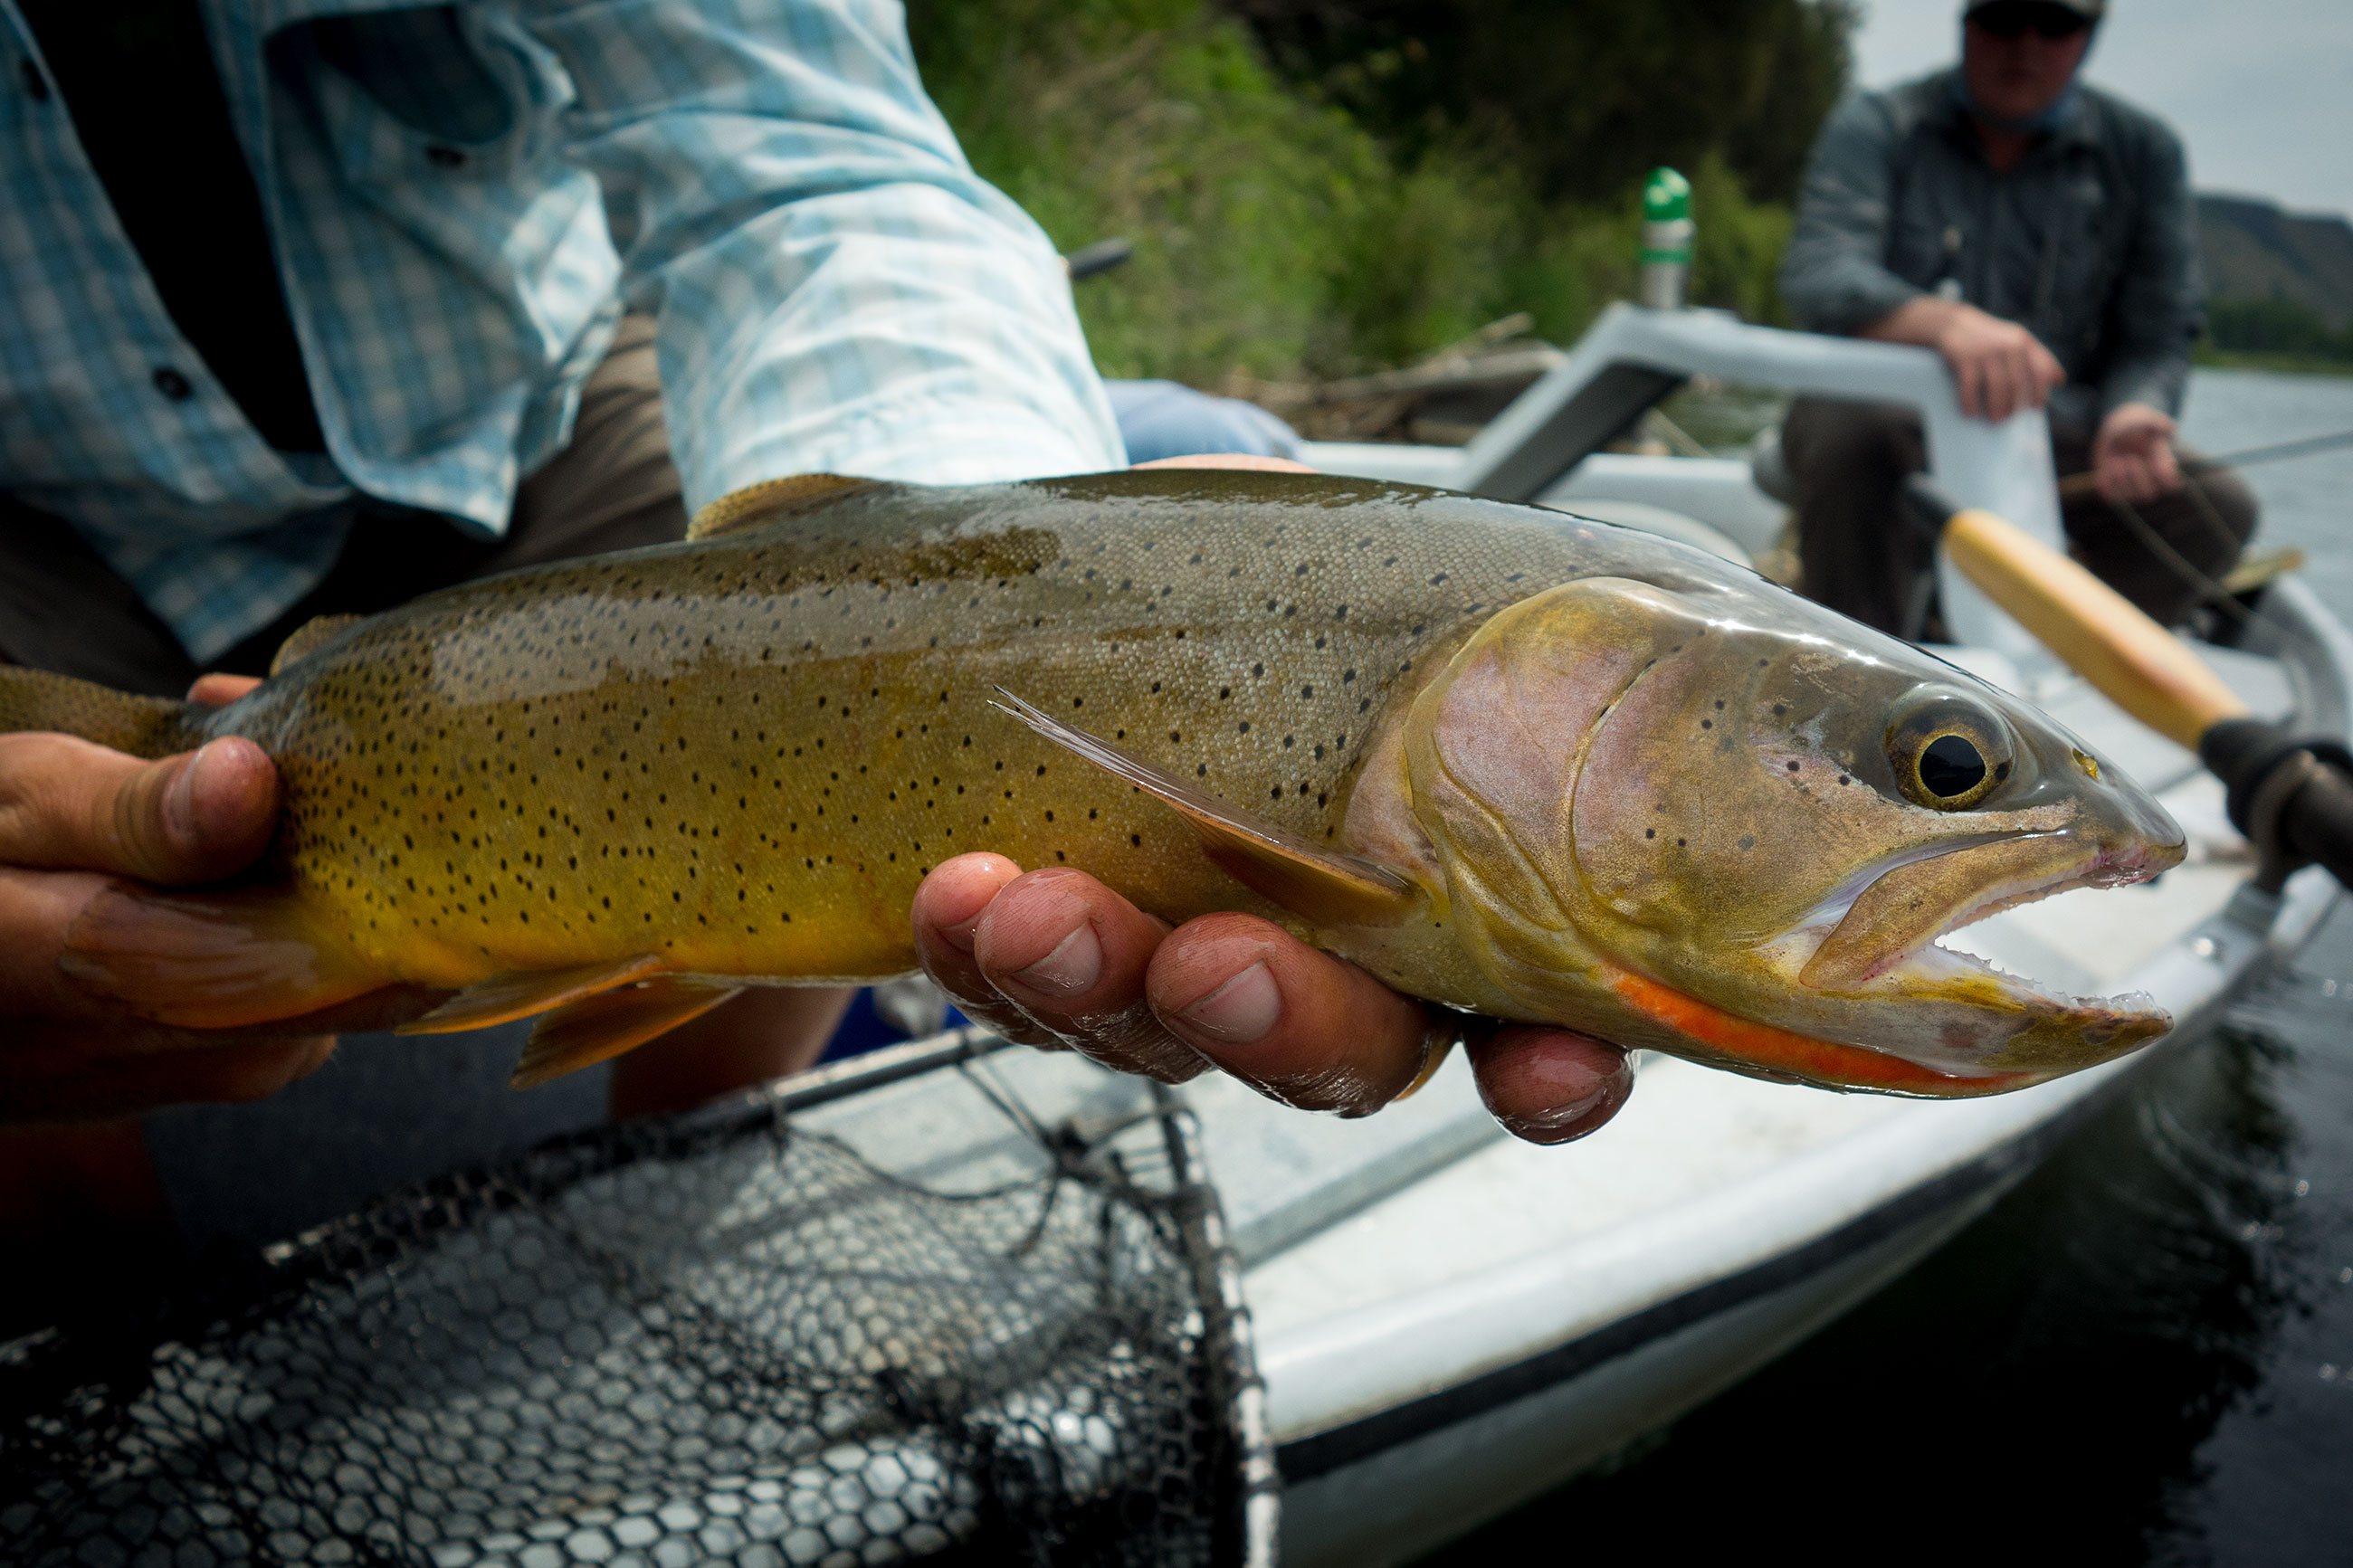 Typical South Fork fish. The two days would be stacked with fish of this size smashing our huge dry flies.